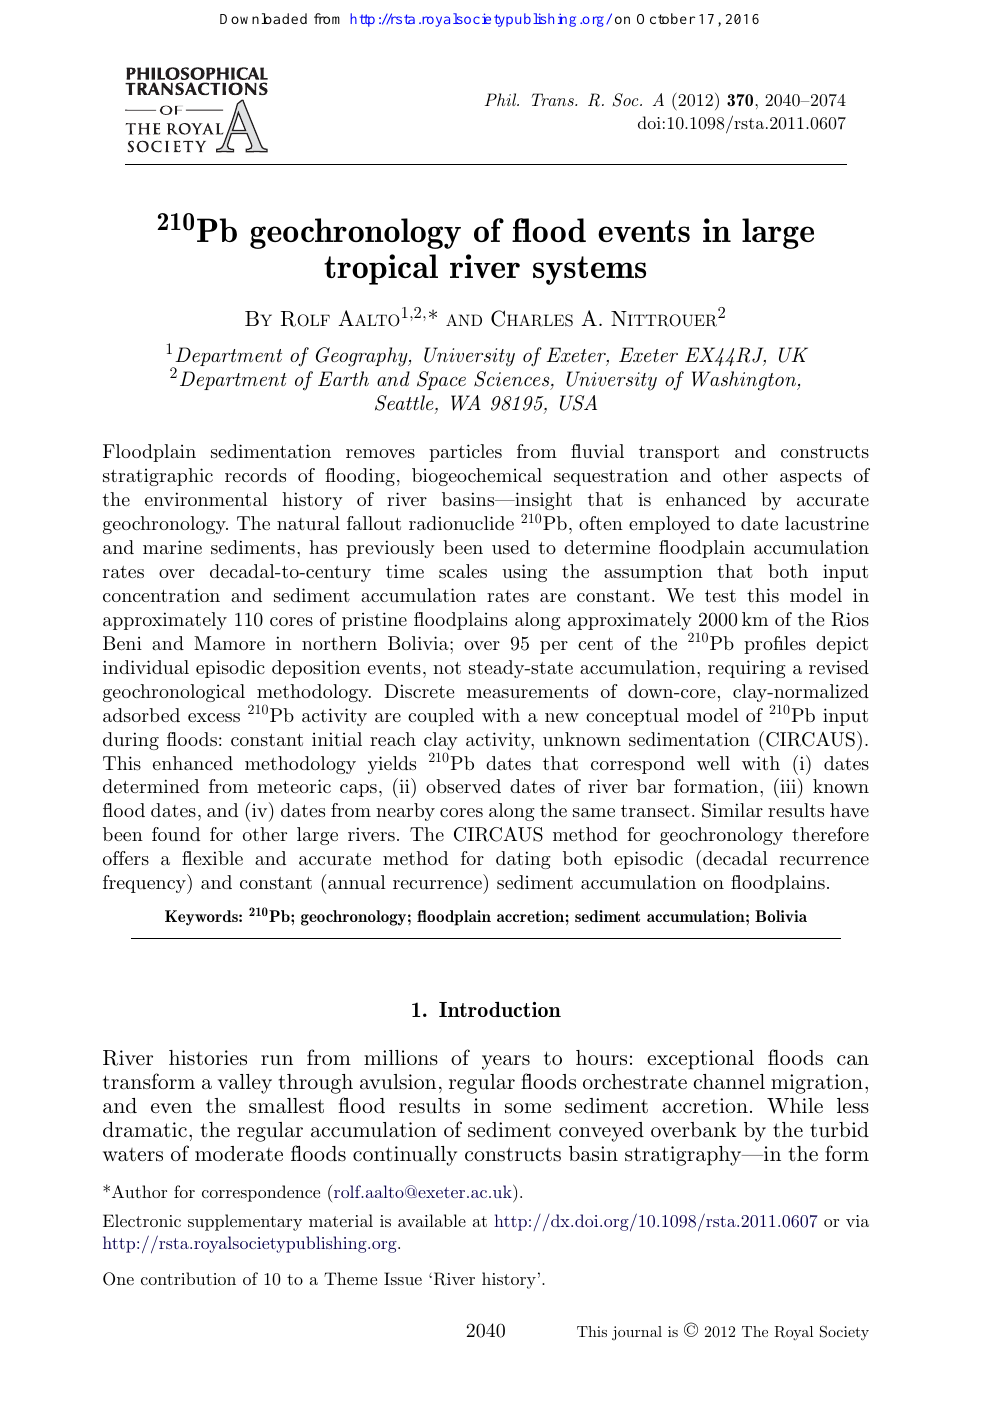 210Pb geochronology of flood events in large tropical river